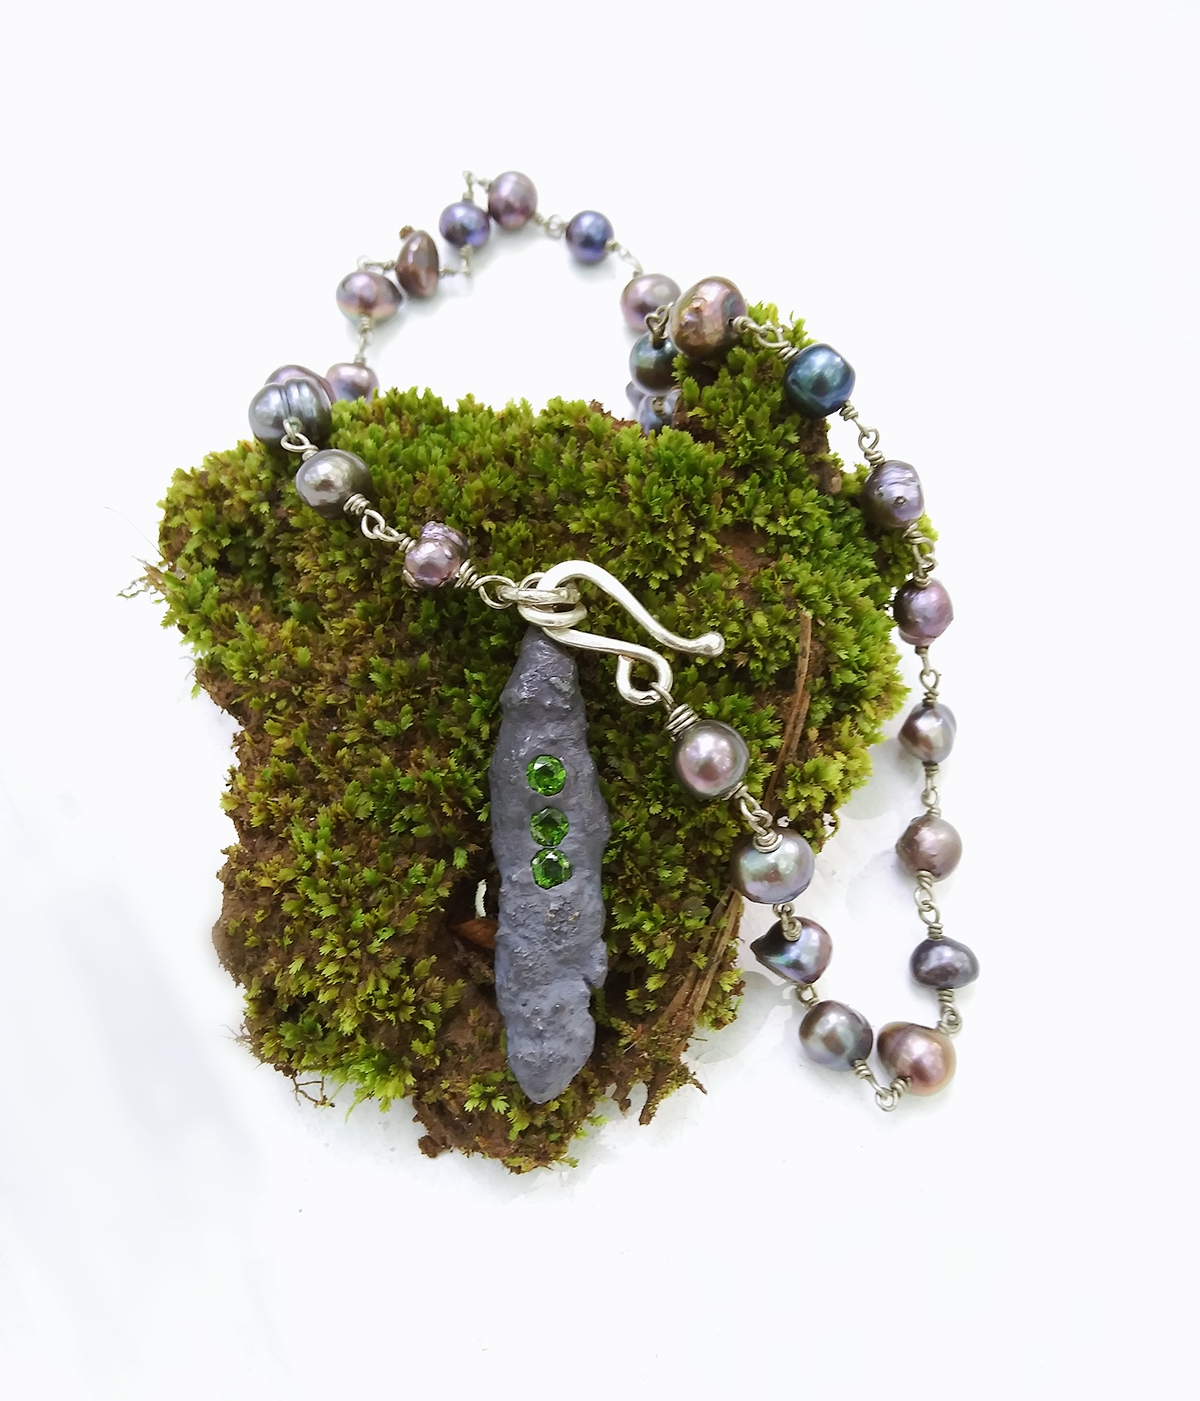 Green Tsavorite Garnet Necklace